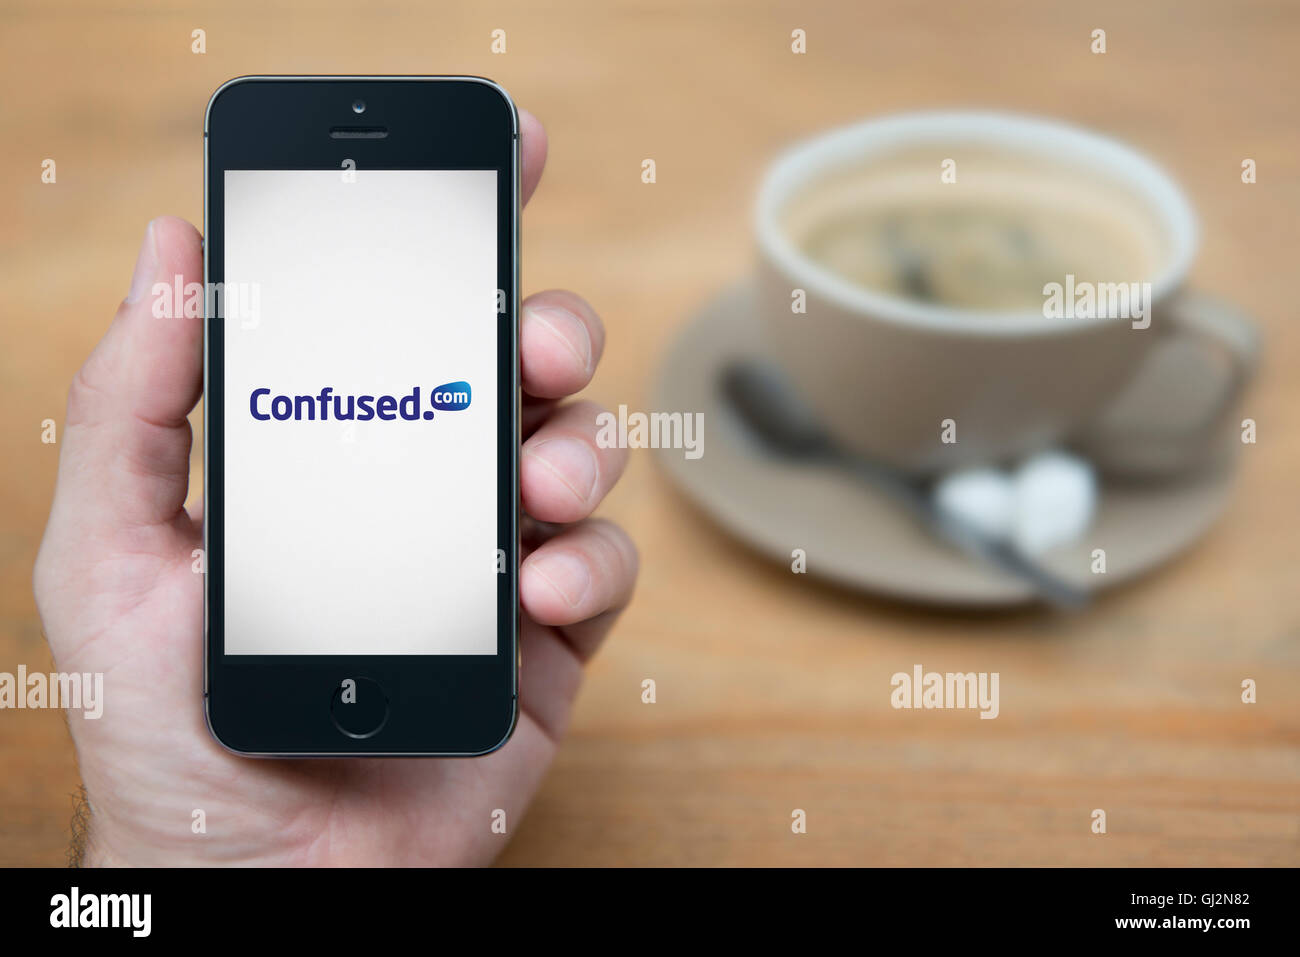 A man looks at his iPhone which displays the Confused.com logo, while sat with a cup of coffee (Editorial use only). - Stock Image